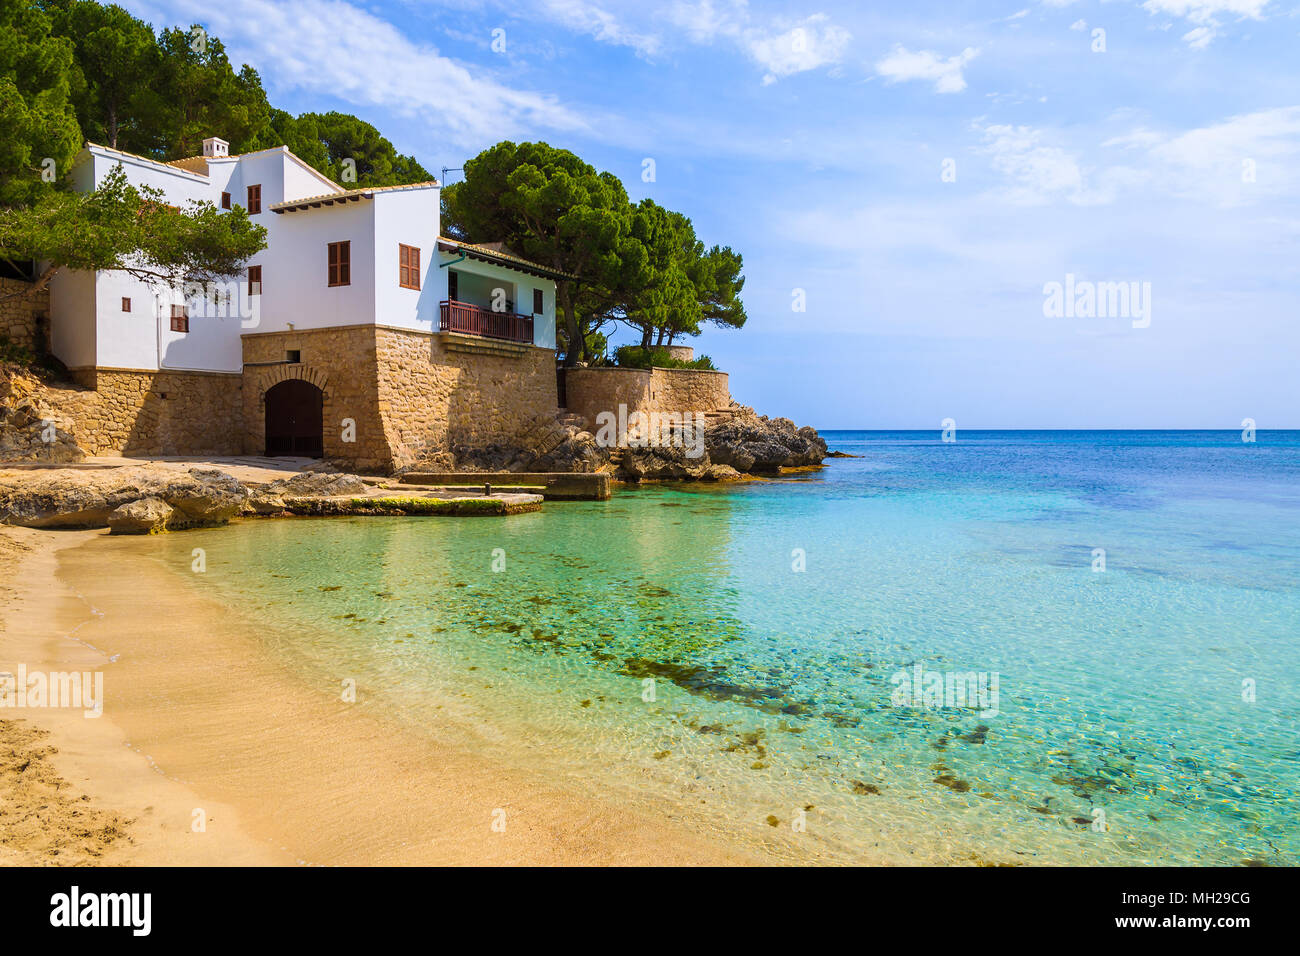 View of beautiful Cala Gat bay with beach and house on shore, Majorca island, Spain - Stock Image